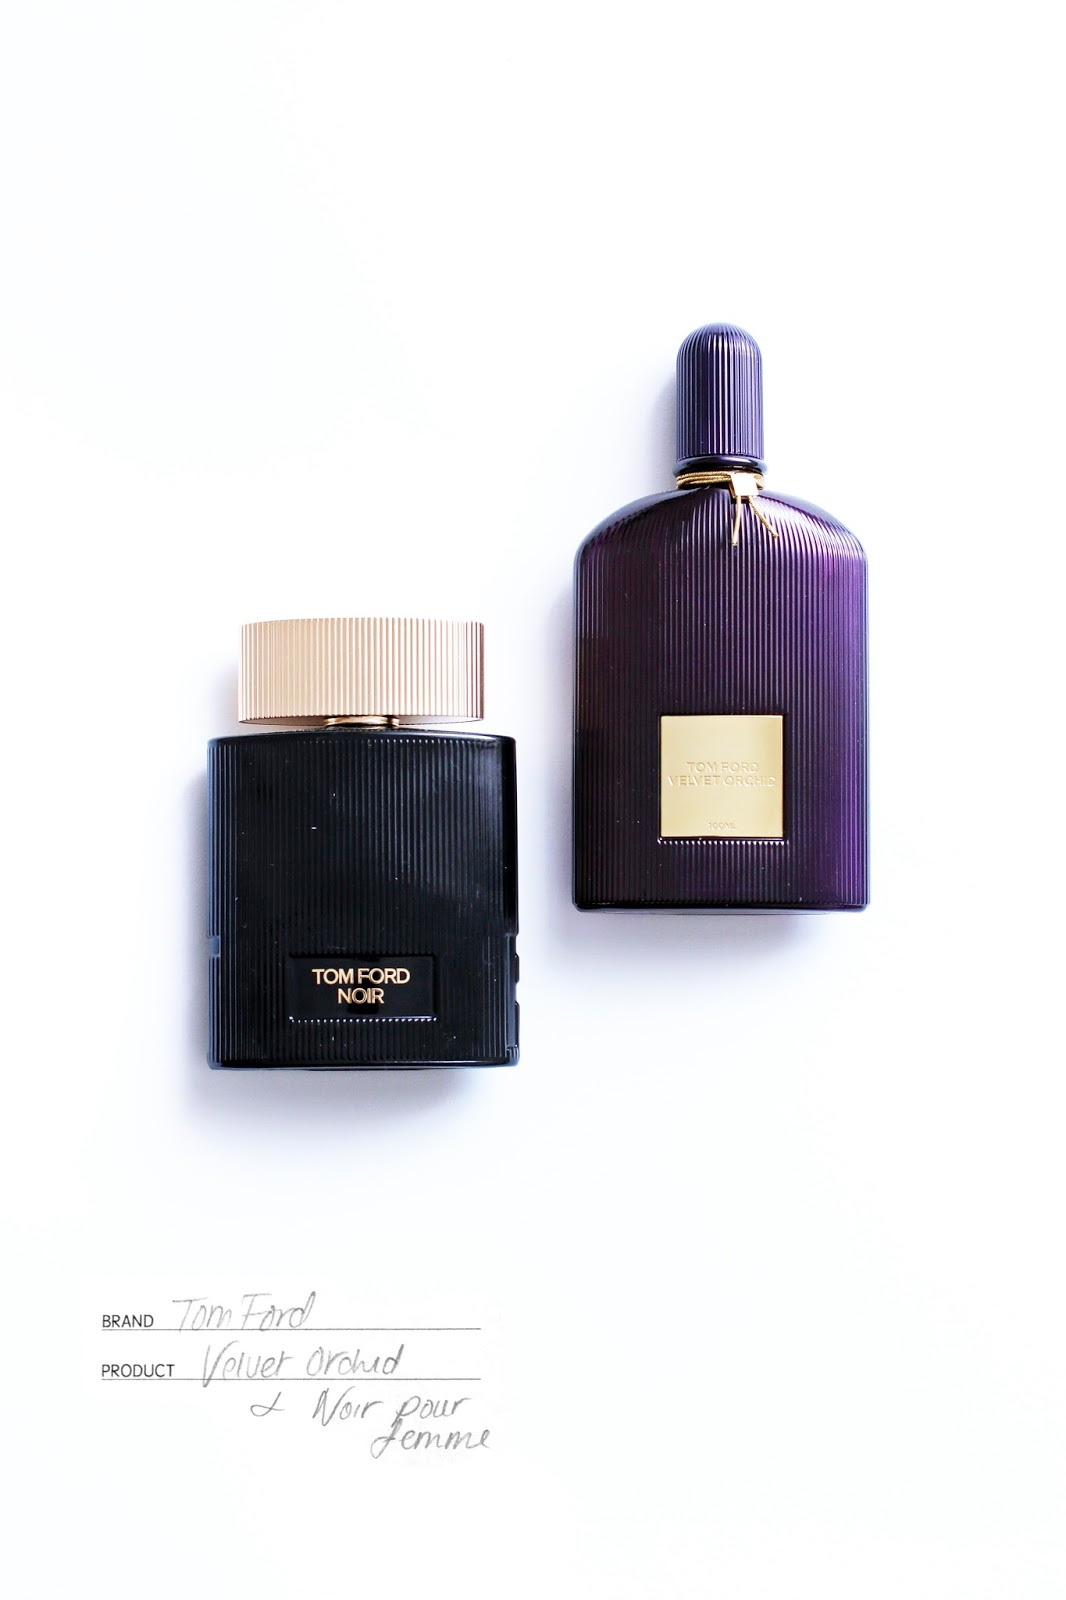 Tom Ford Velvet Orchid and Noir Pour Femme Fragrance Review